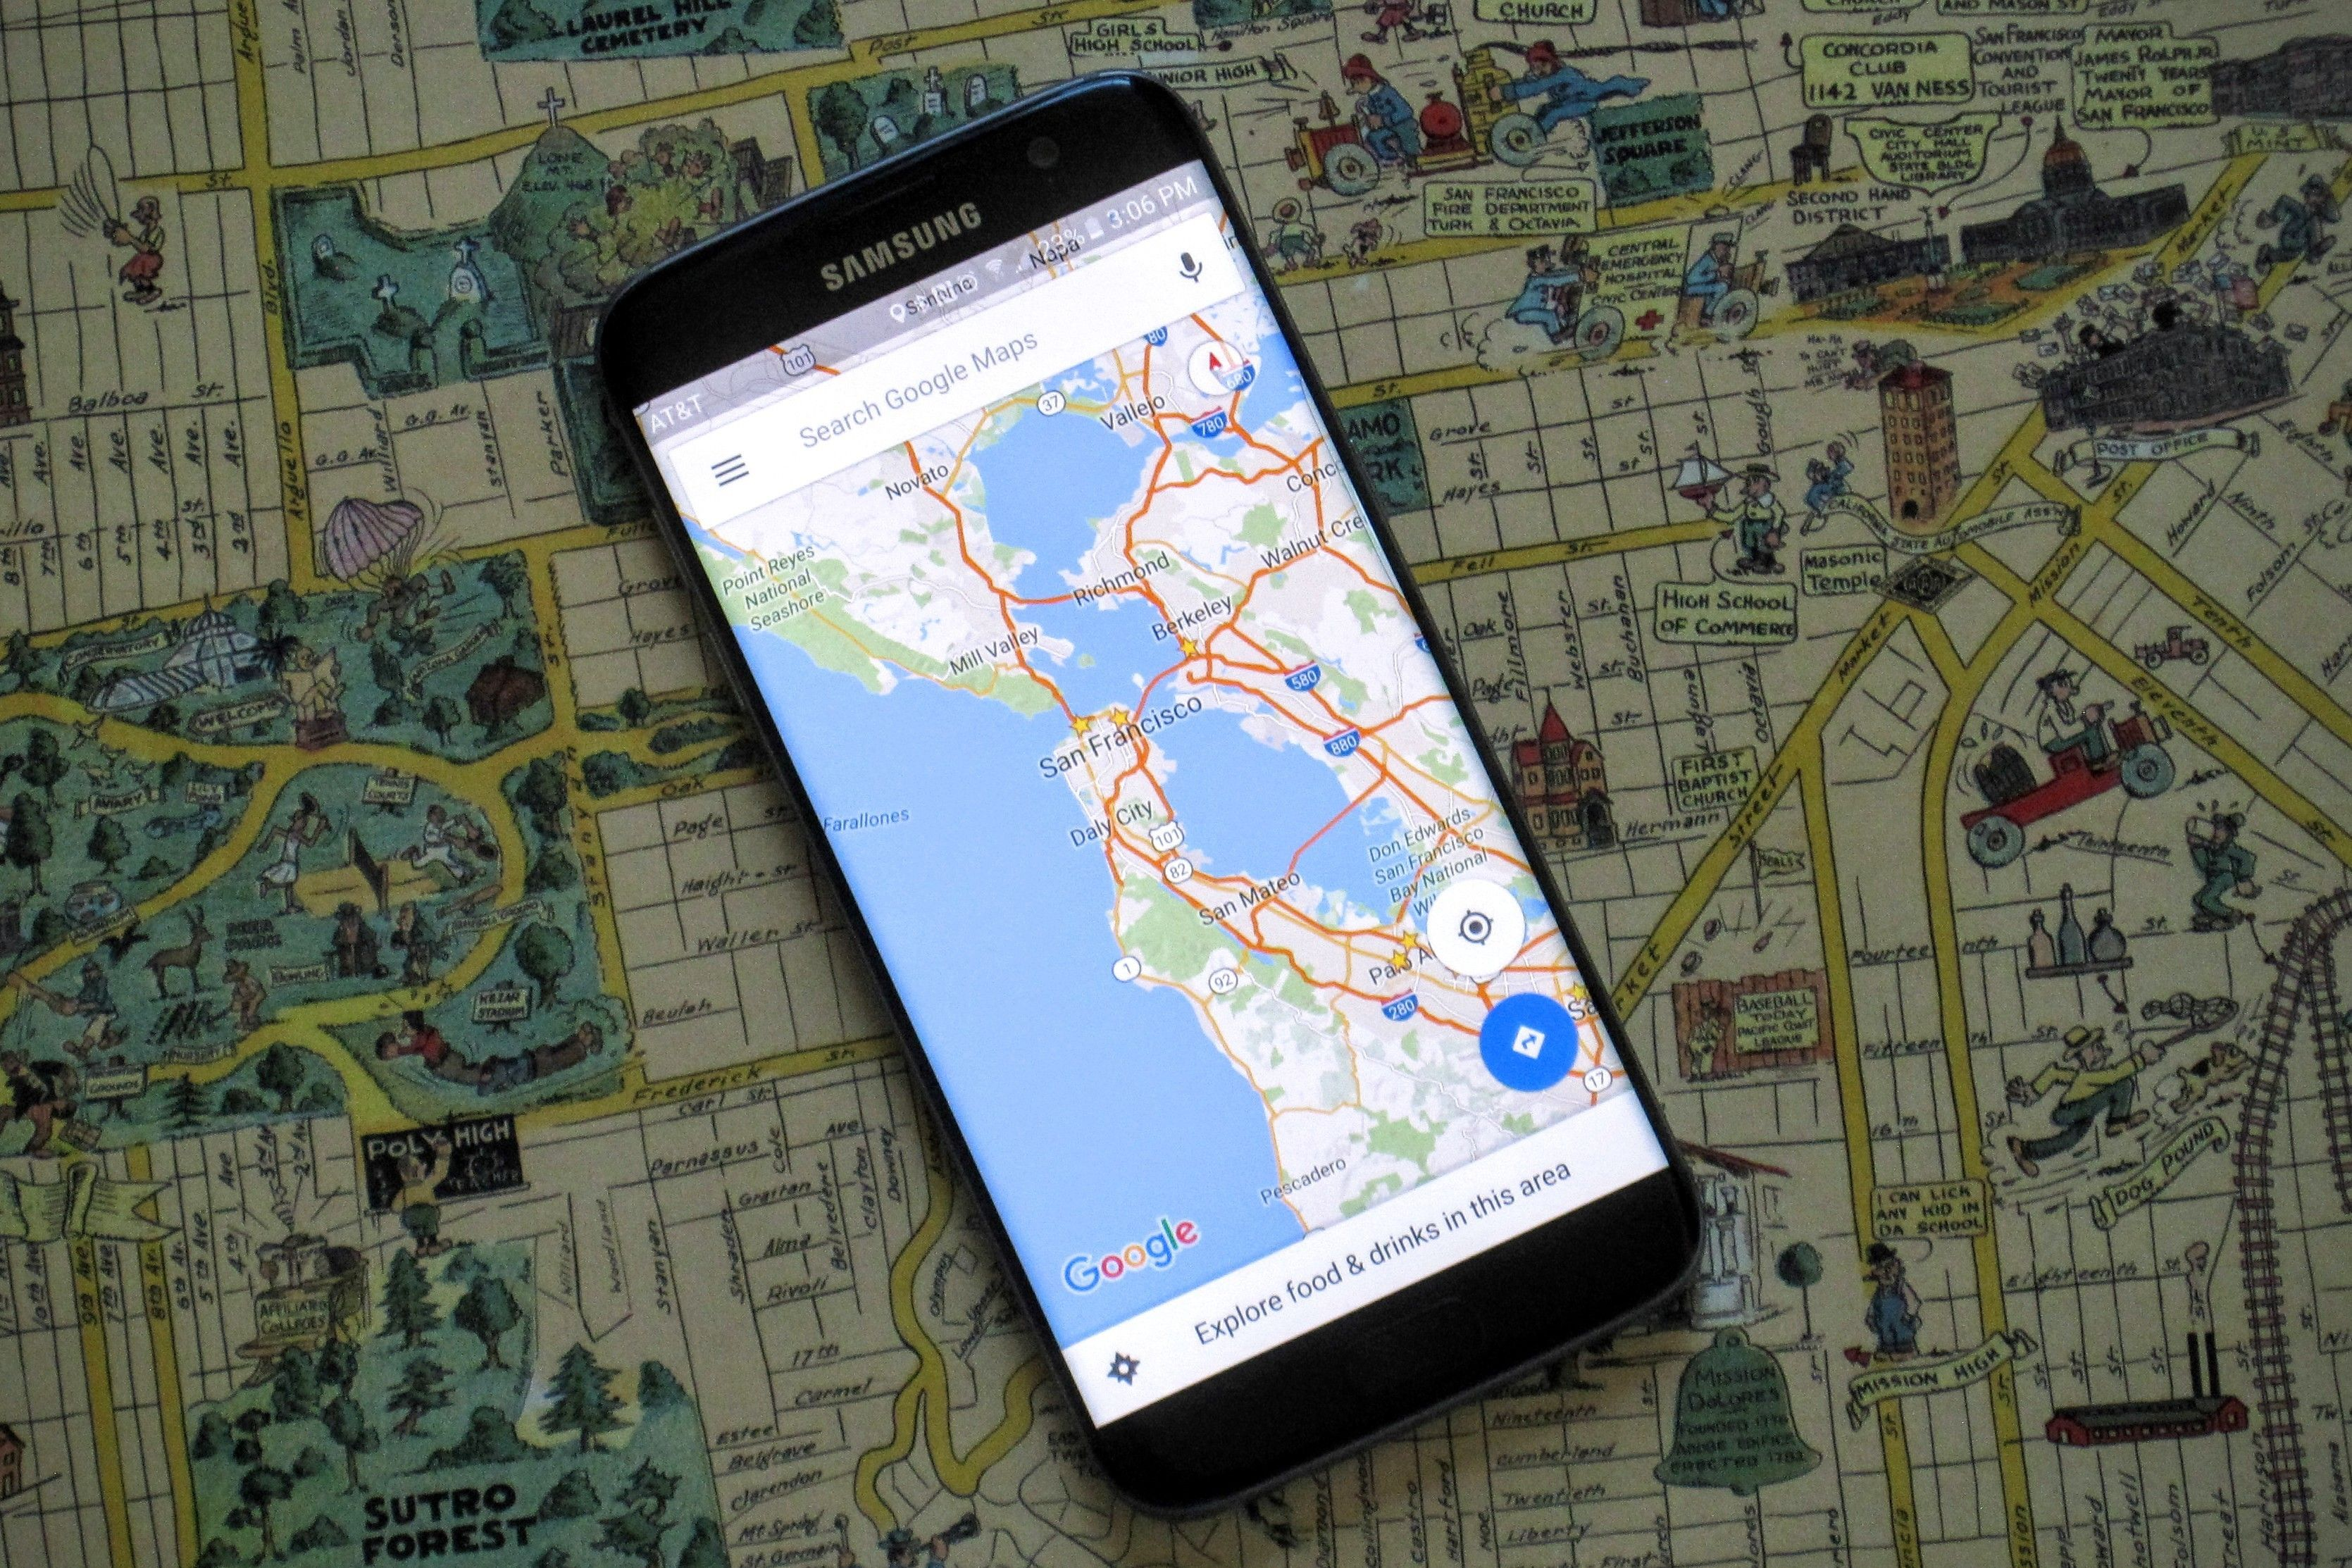 New Google Maps update gives you realtime alerts about